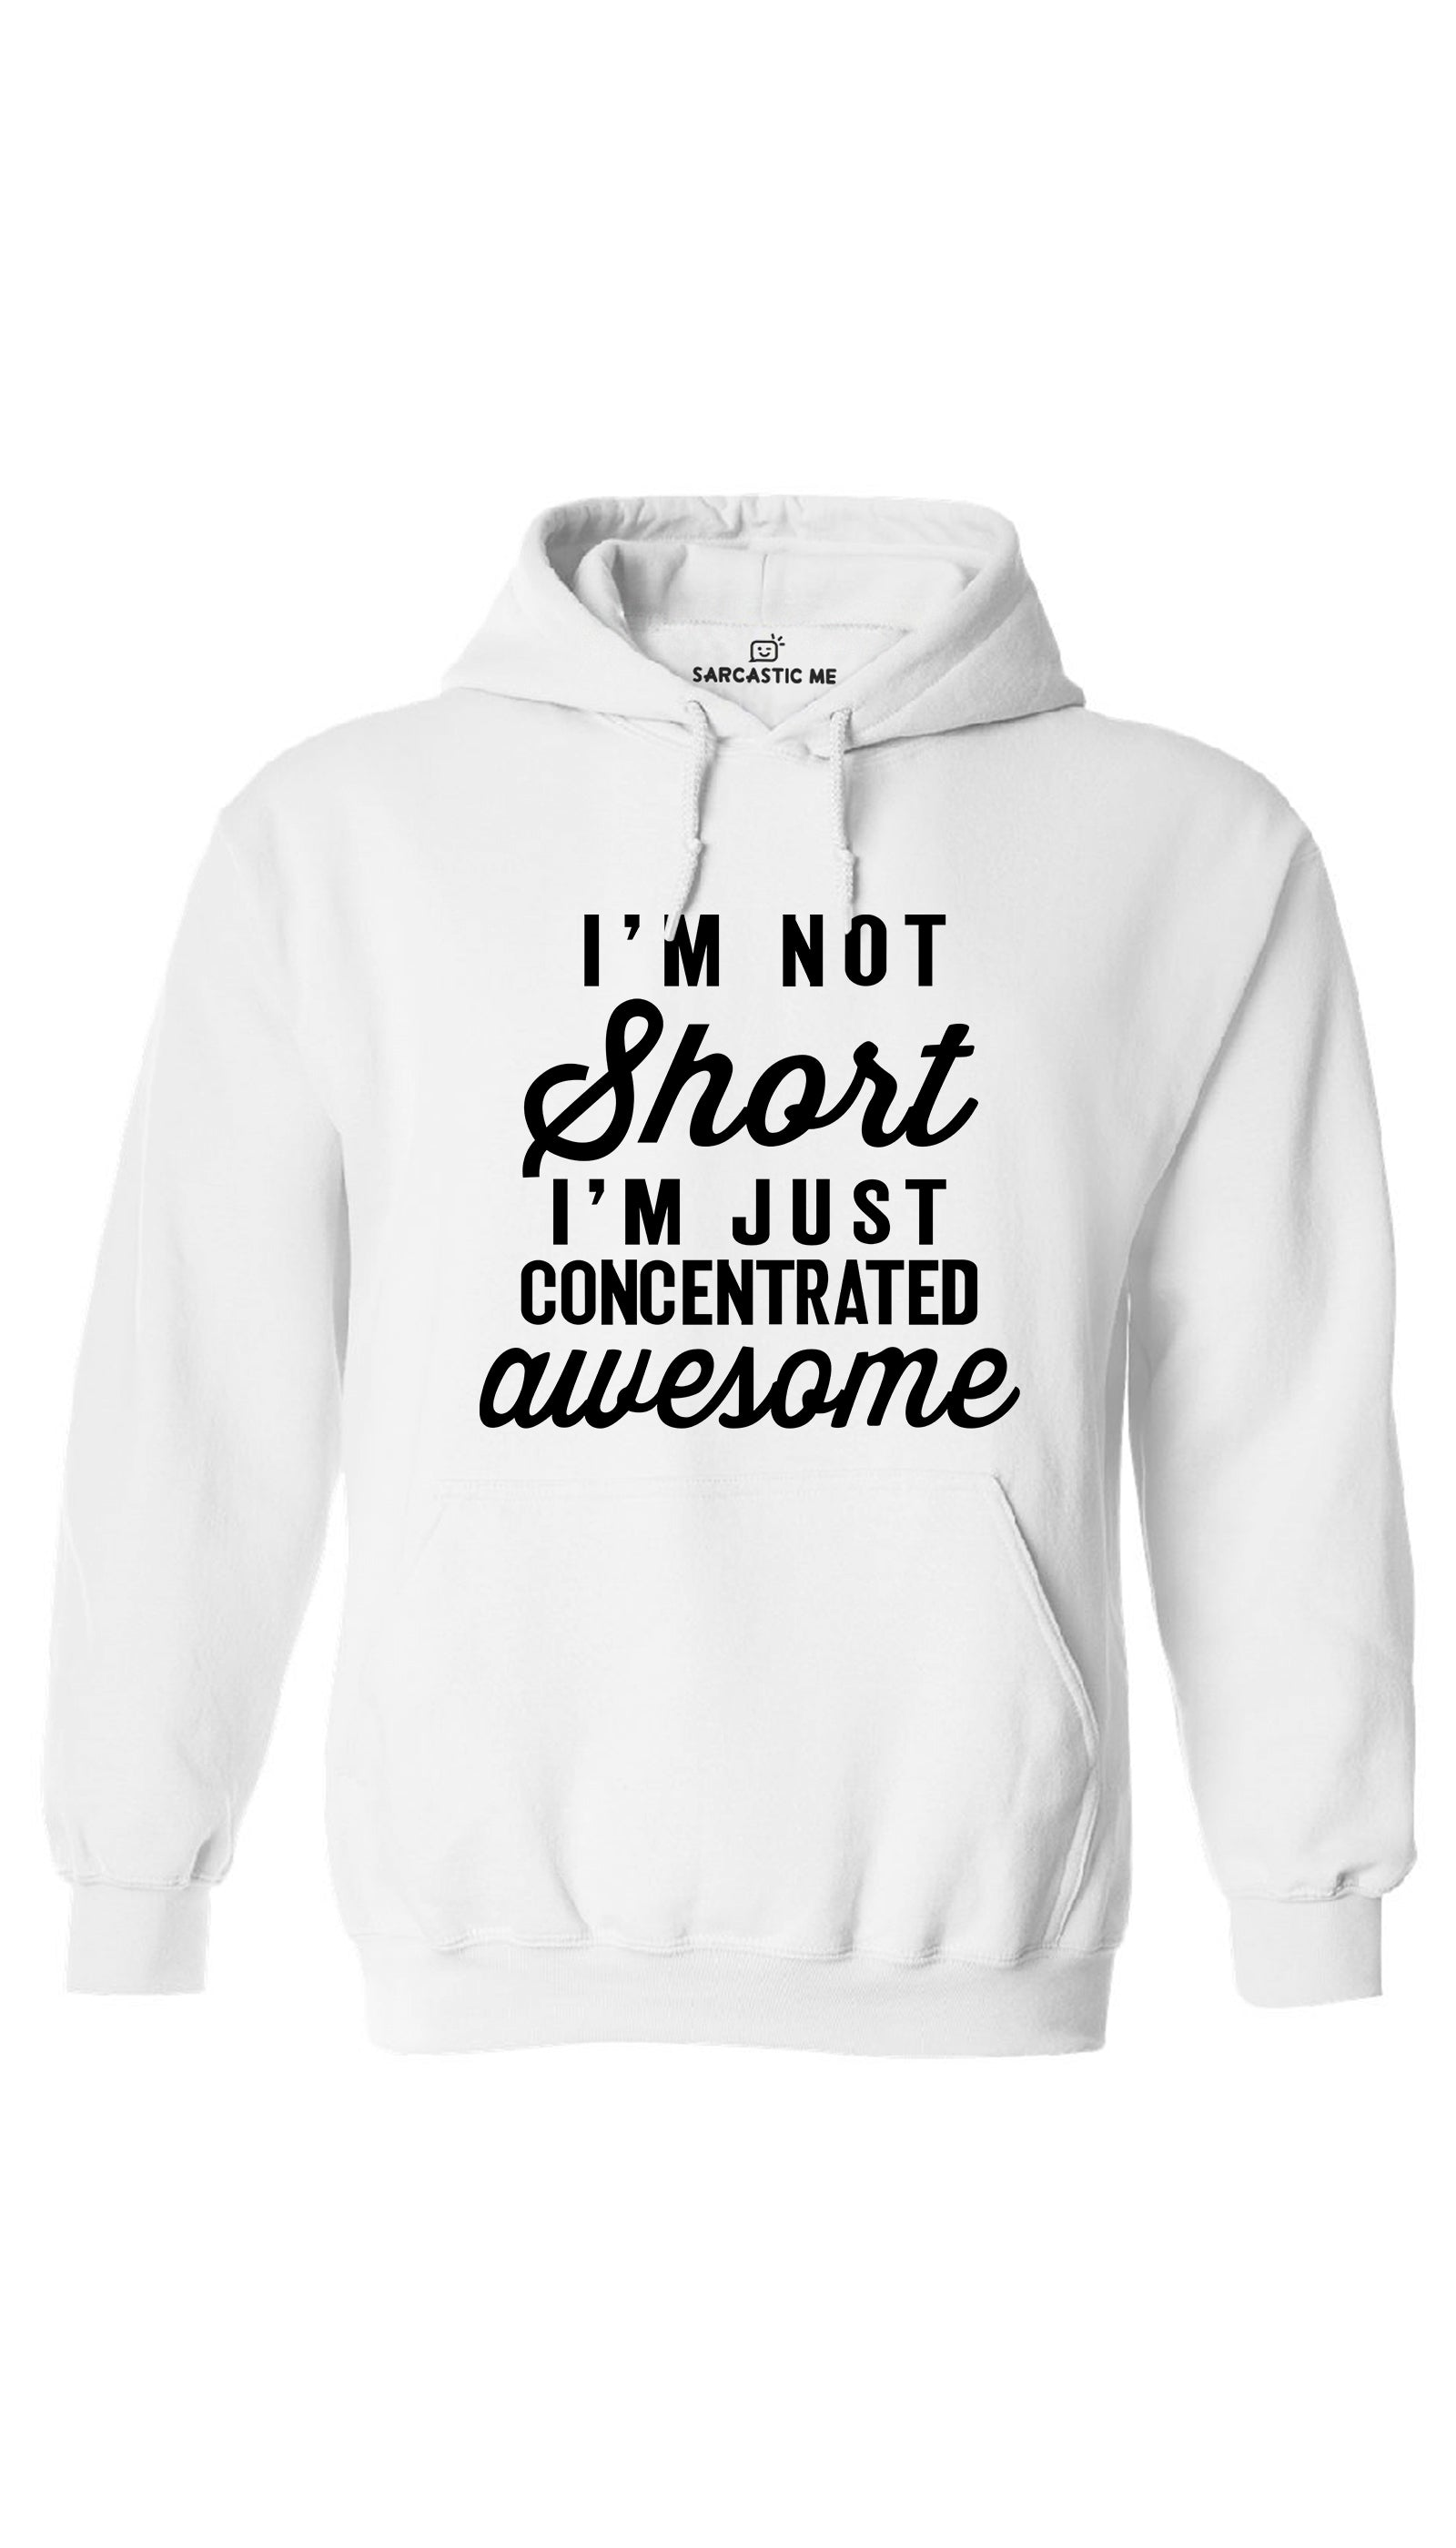 I'm Not Short I'm Just Awesome White Hoodie | Sarcastic ME